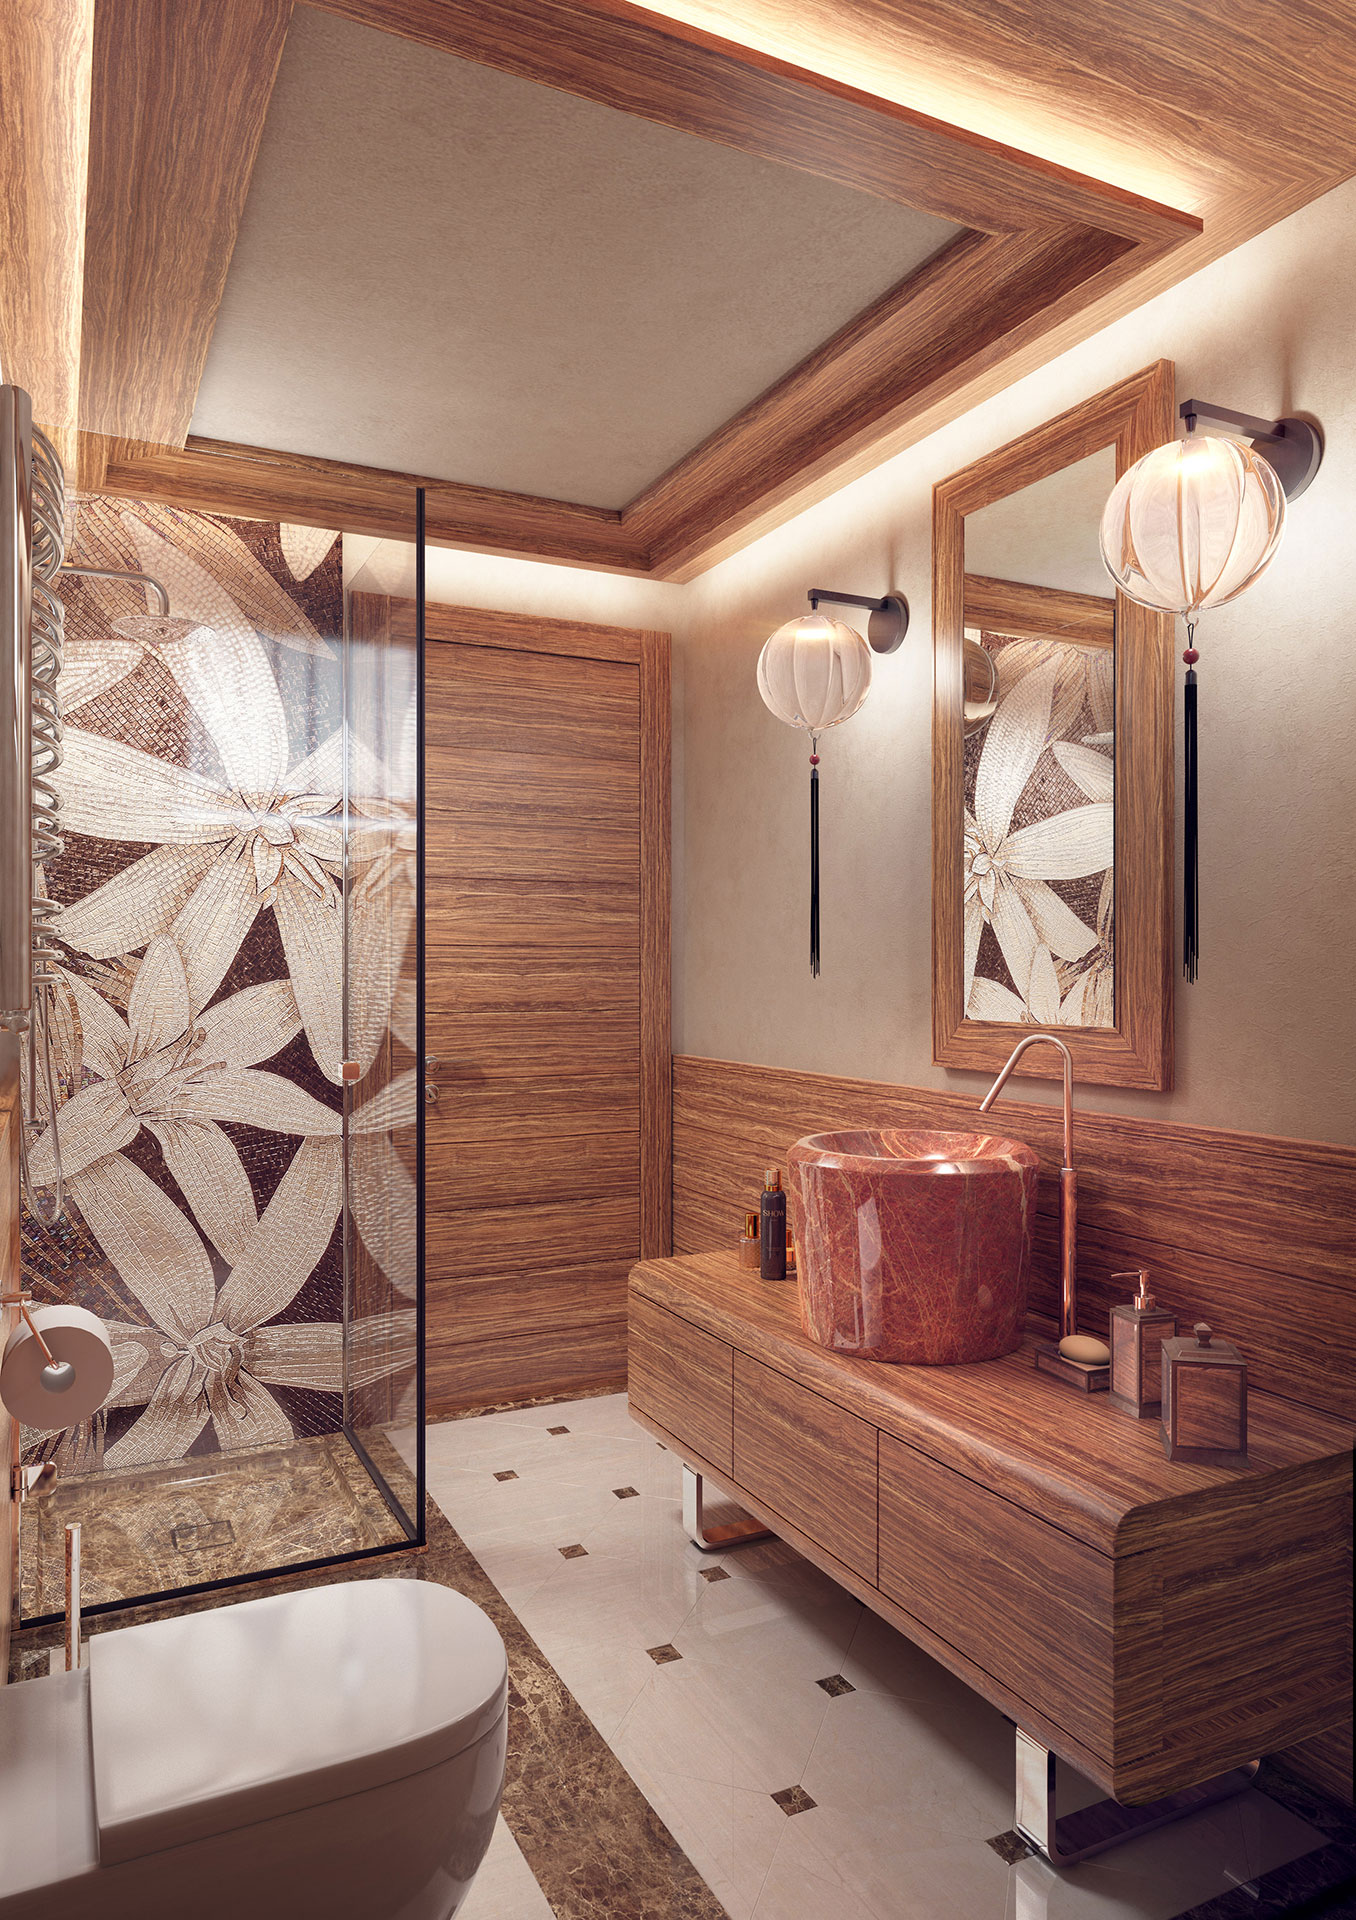 Faoma high-end bathroom